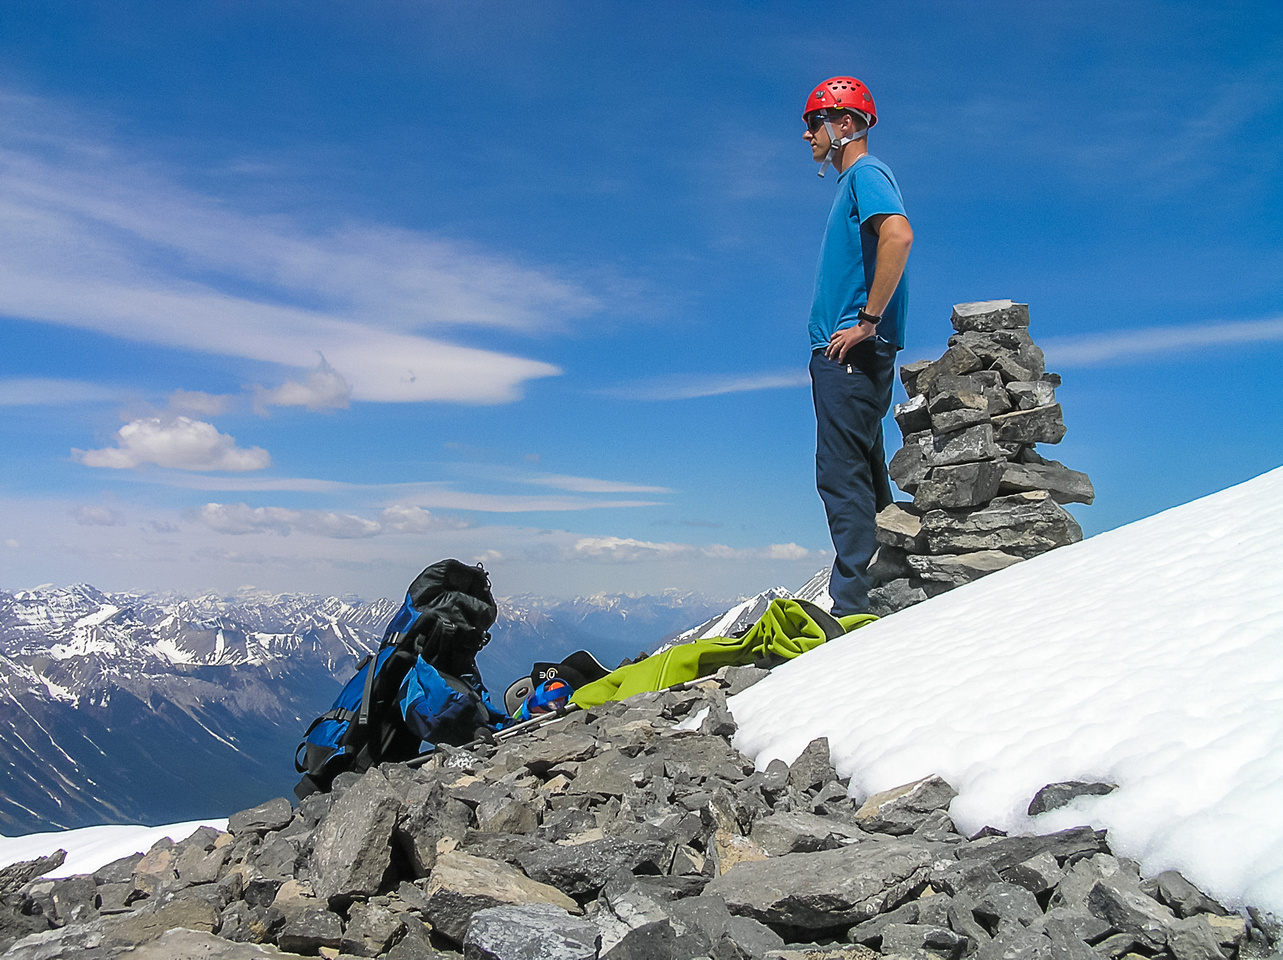 Vern on the summit of Mount Engadine.